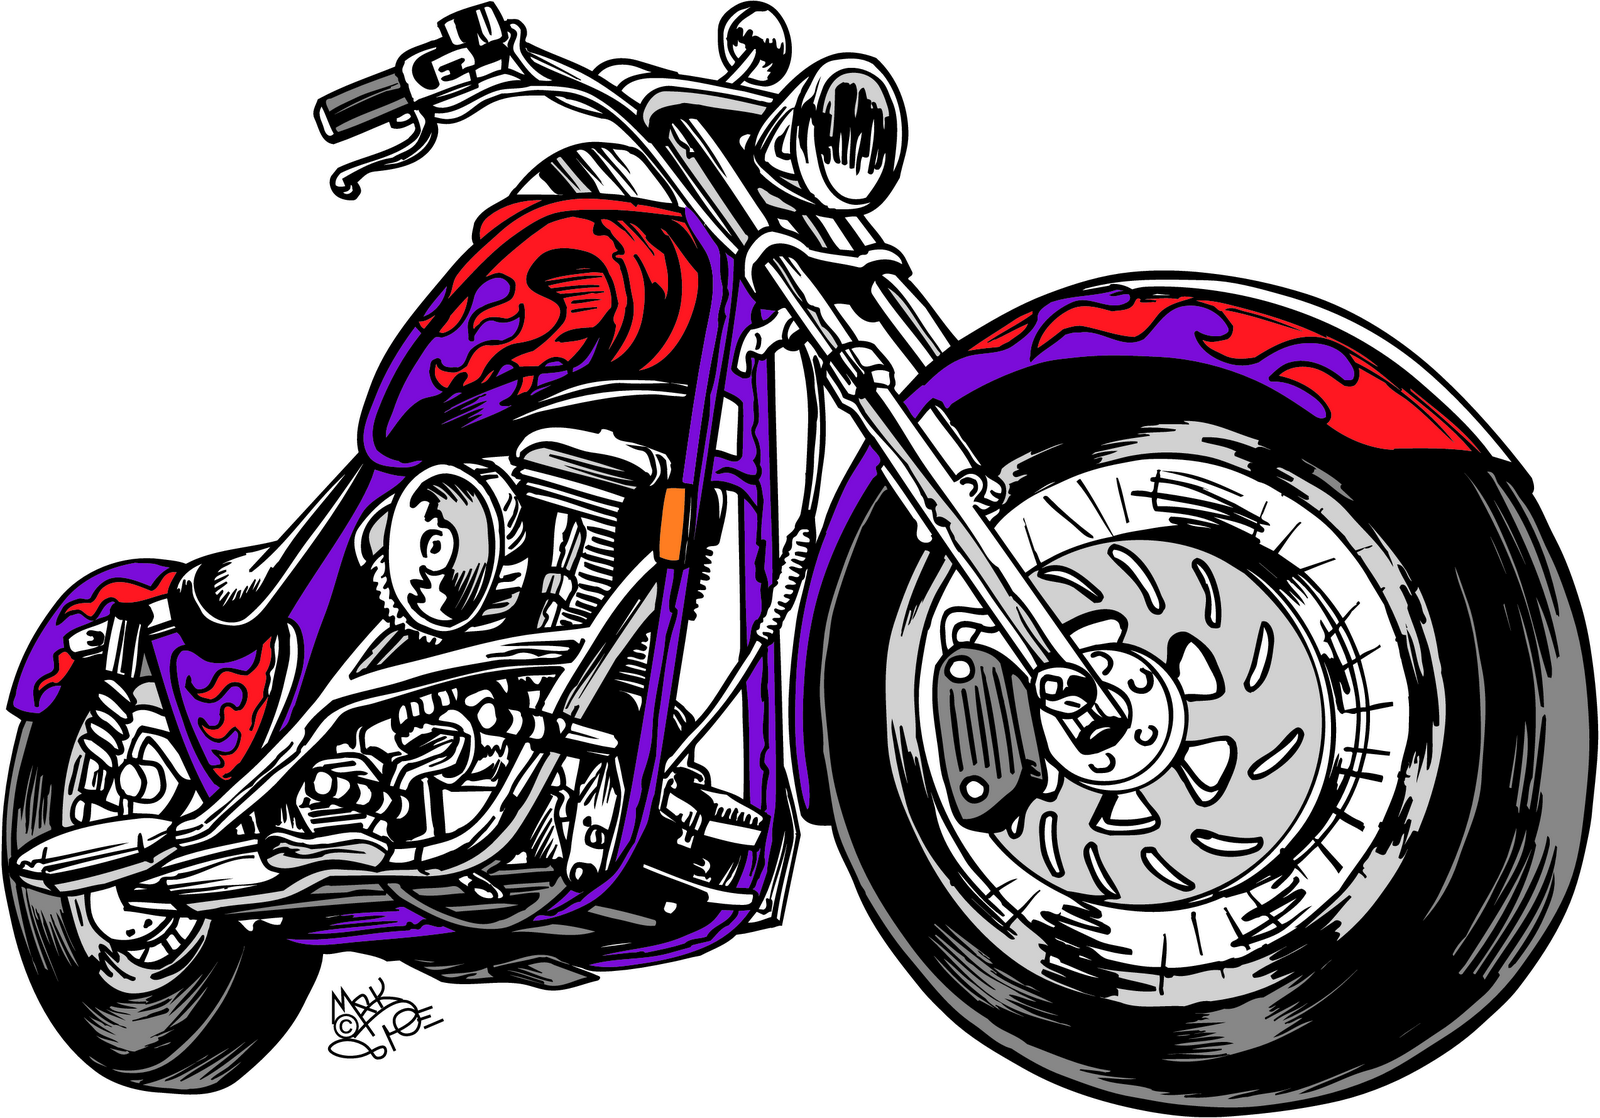 28 motor bike images clip art free cliparts that you can download to ...